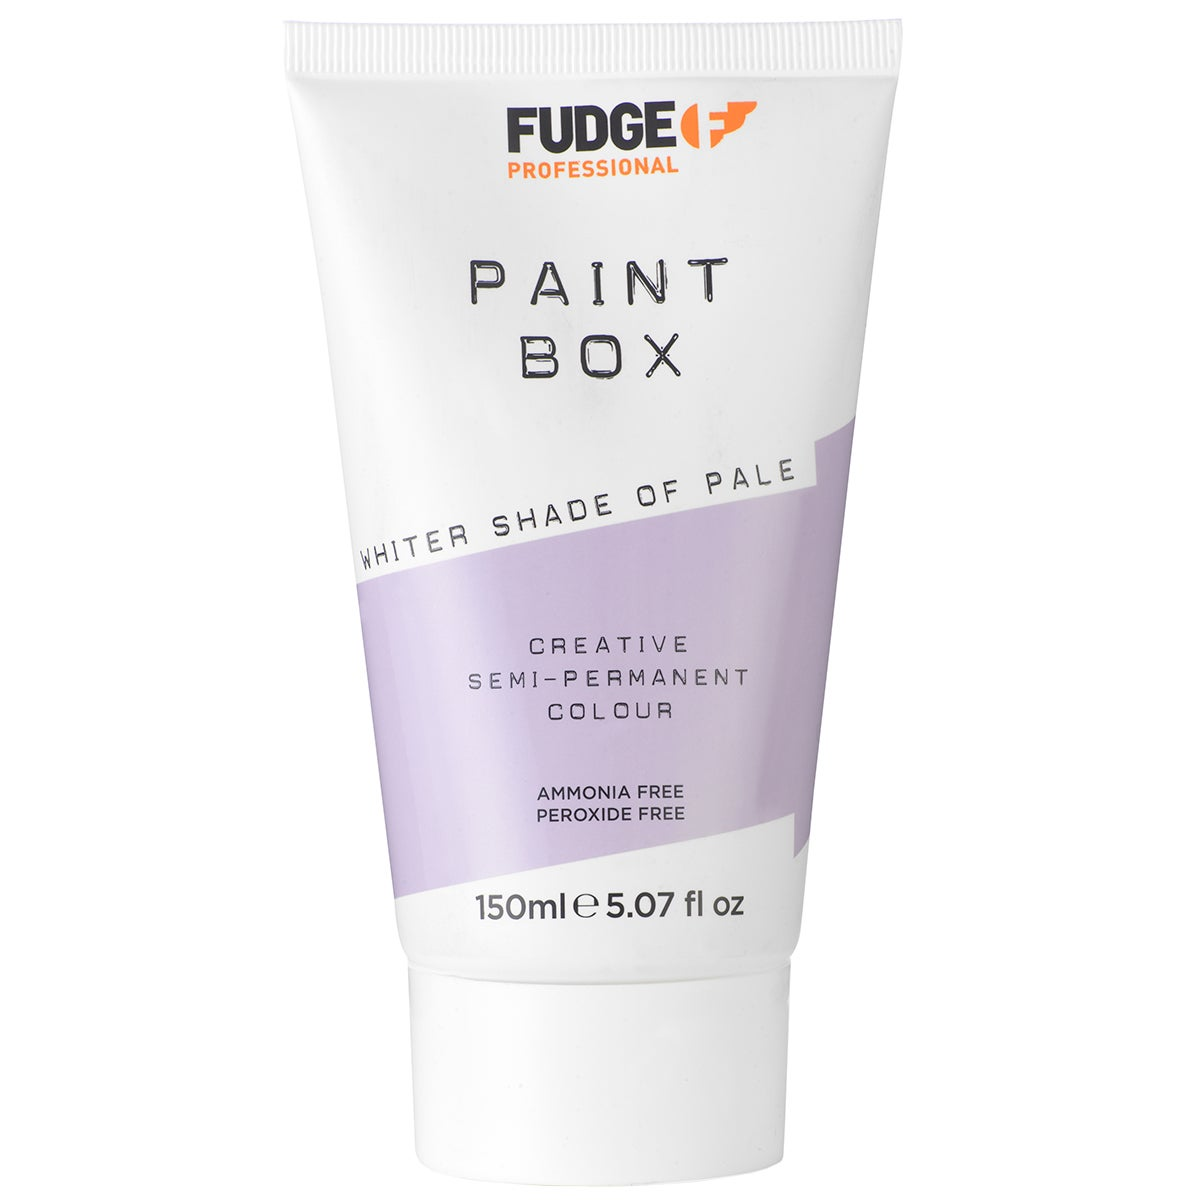 Fudge Paintbox Whiter Shade Of Pale